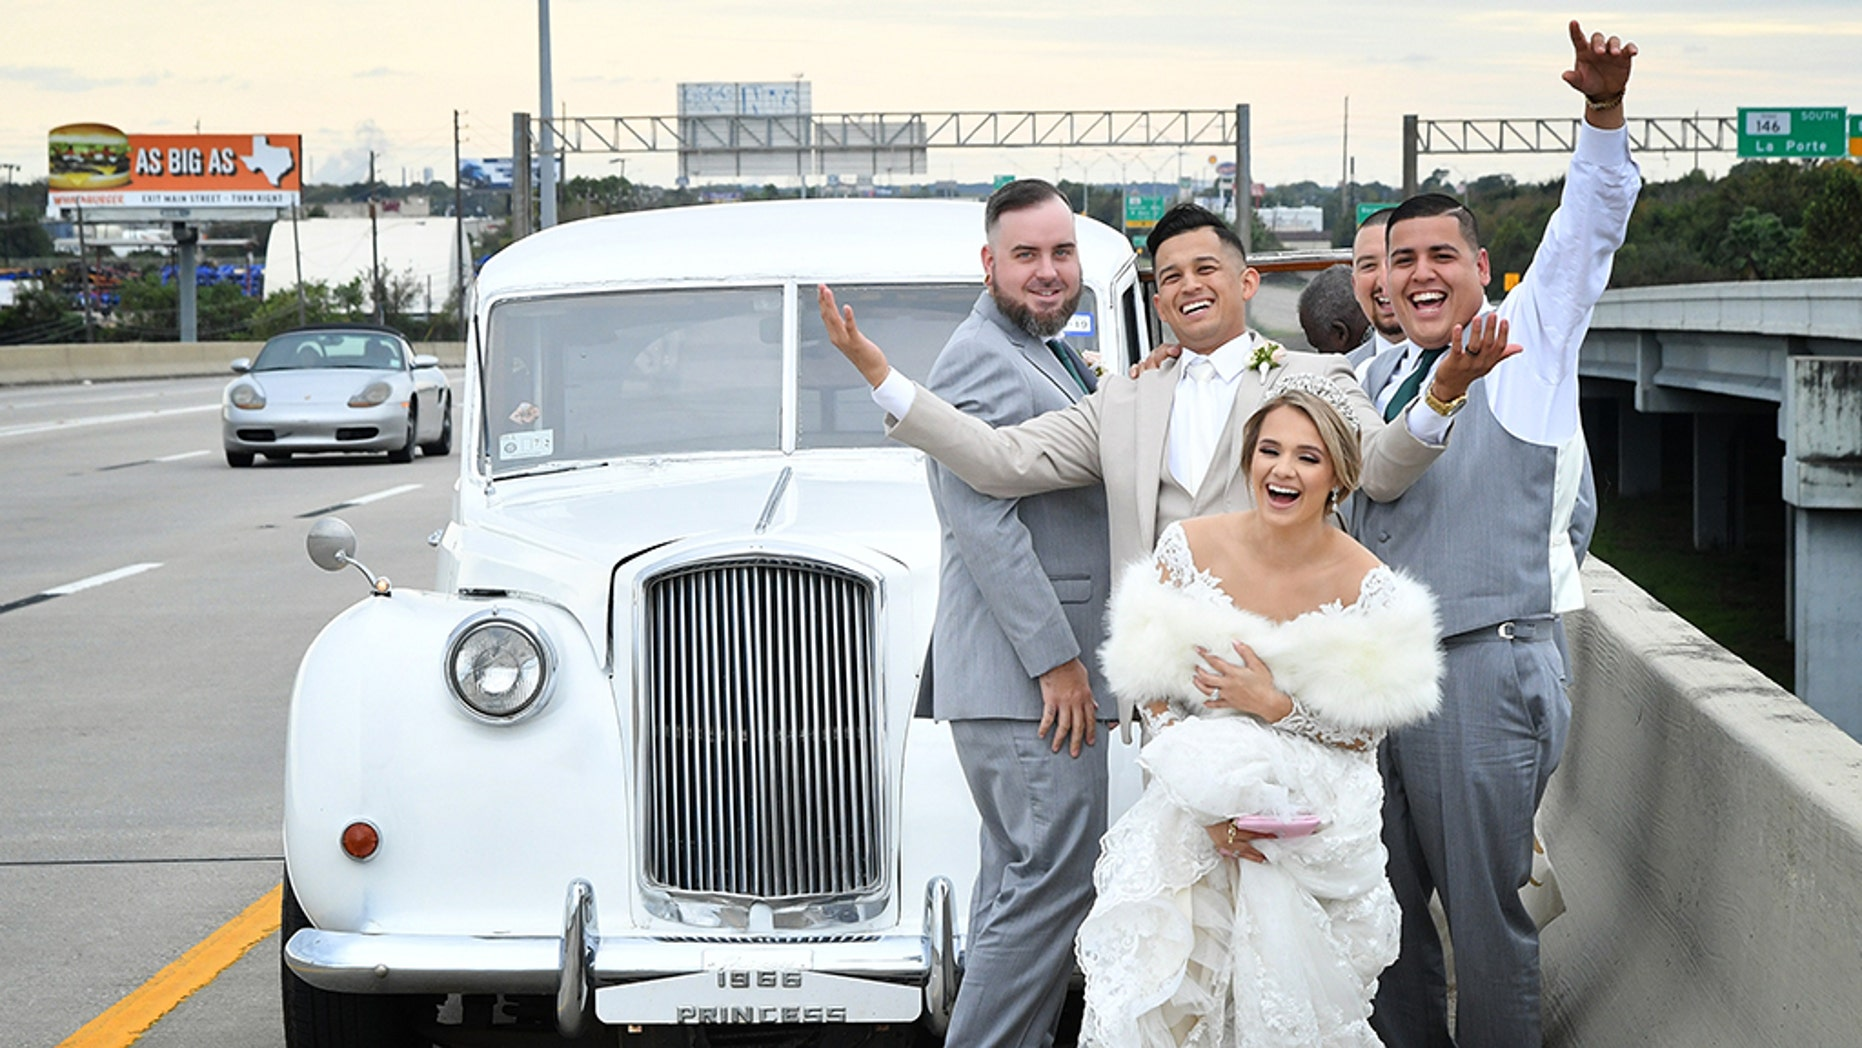 A newlywedcouple's car broke down on their way to the reception and they ended up with this funny picture to remember the moment.